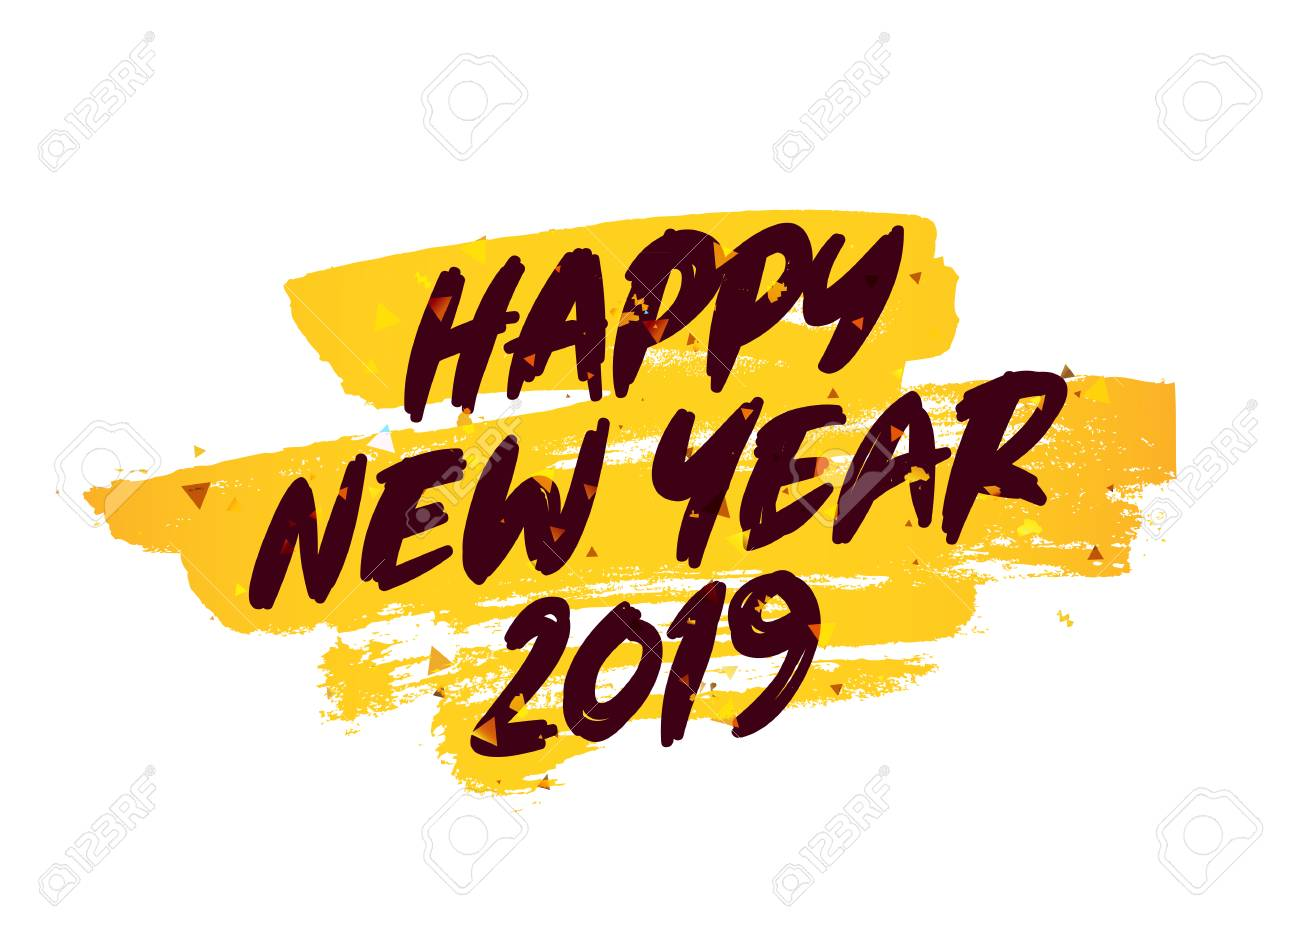 happy new year 2019 lettering vector illustration on a white background with a smear